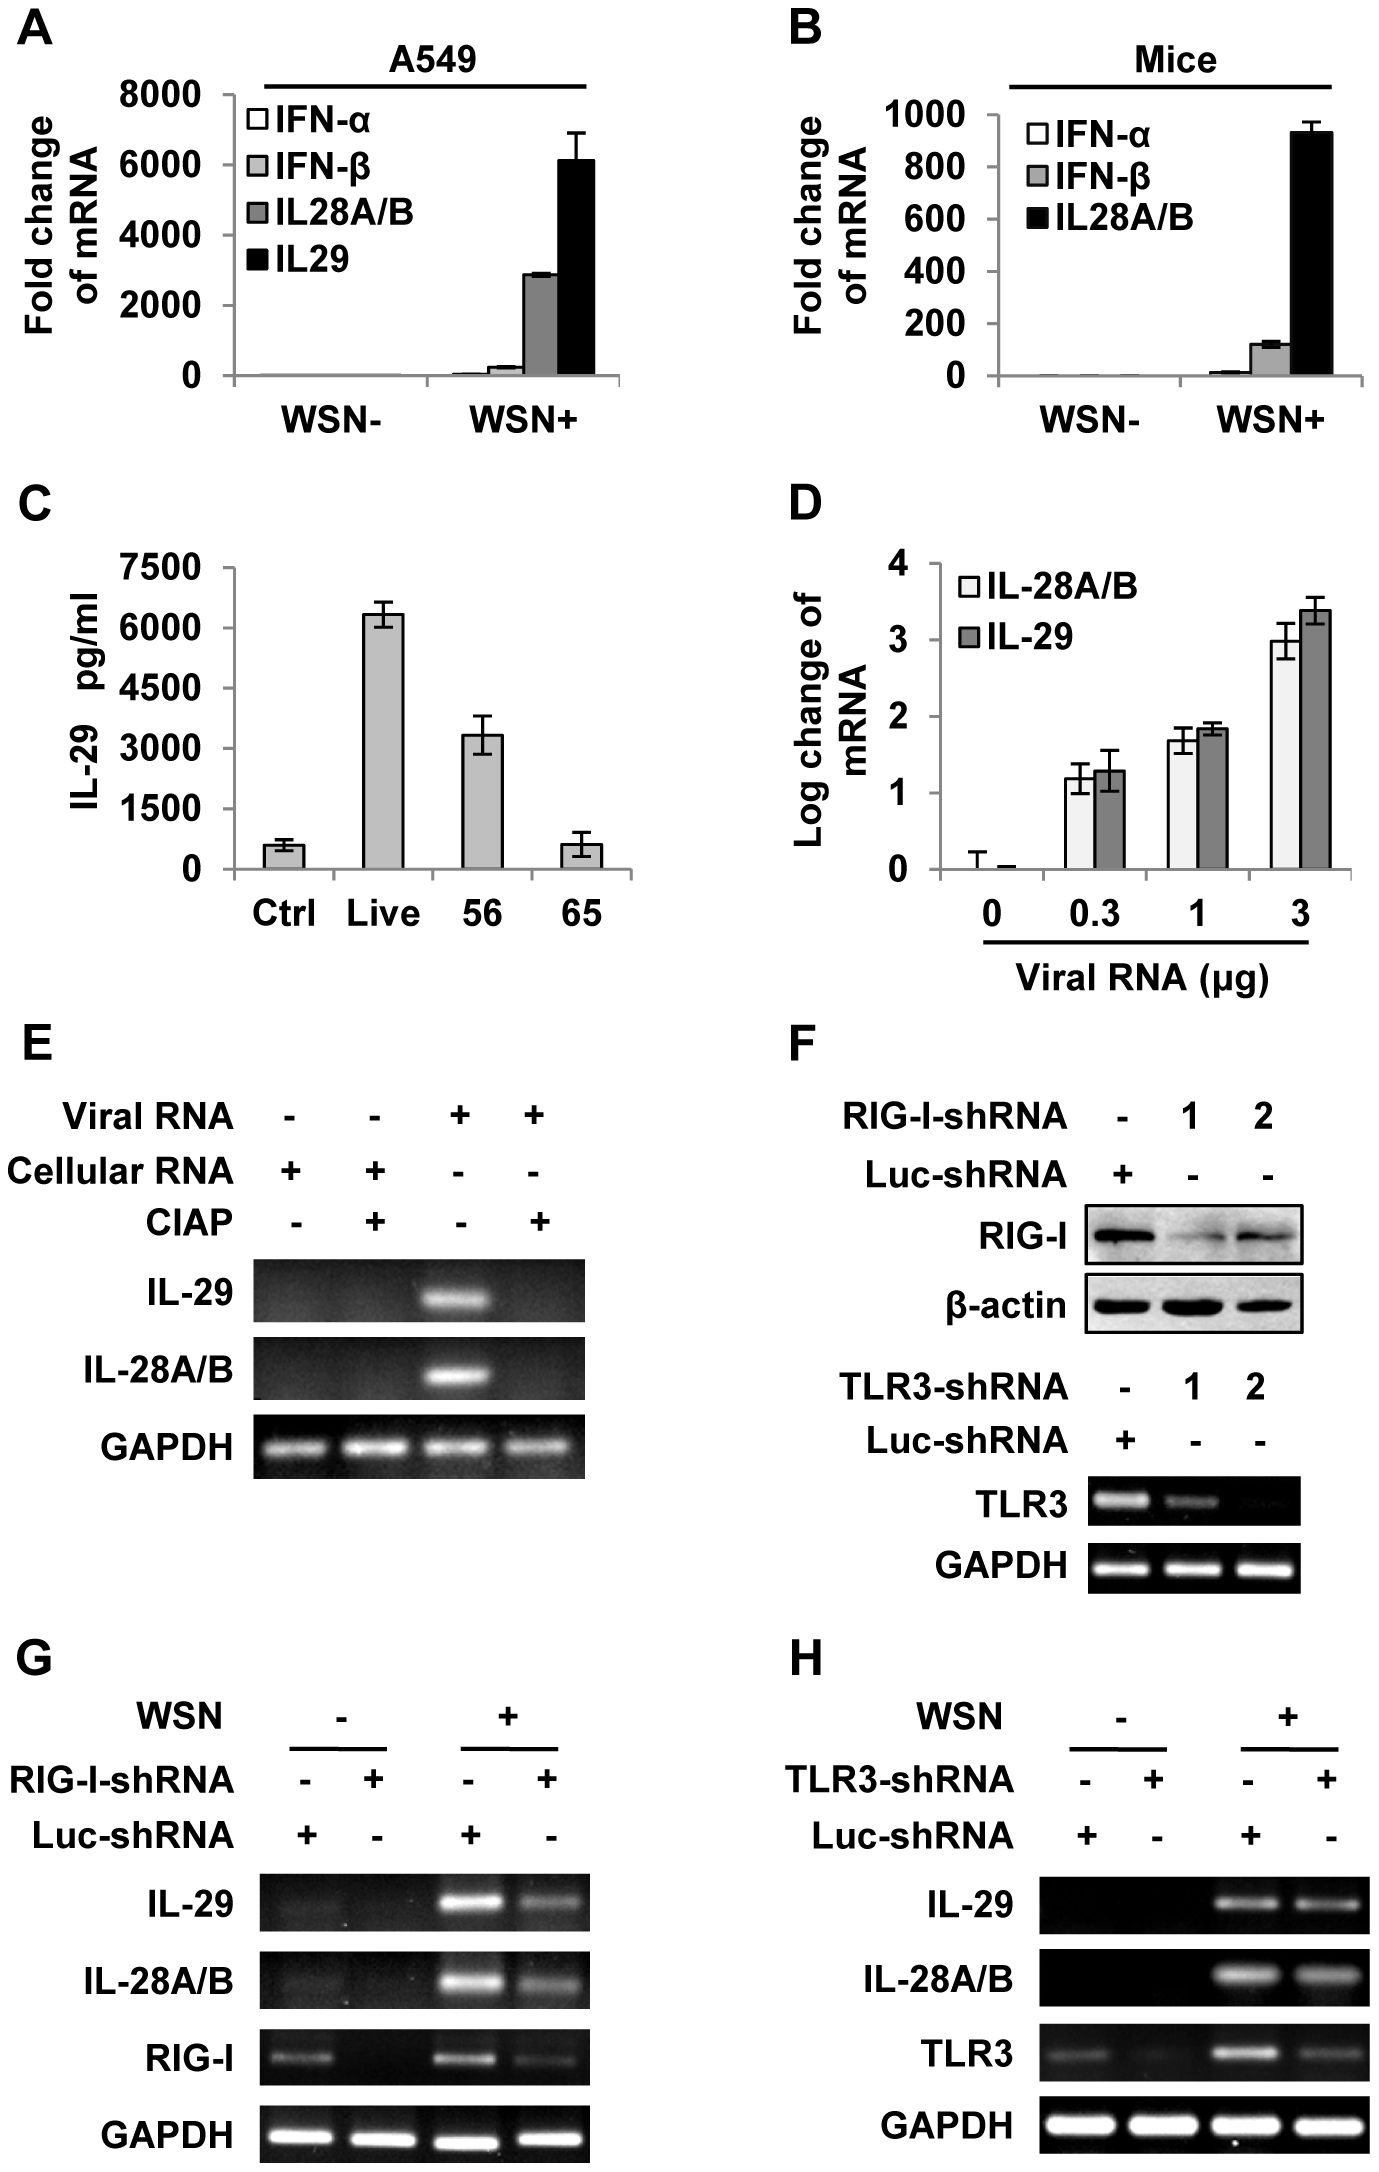 IAV infection induces robust expression of IFN-λ in alveolar epithelial cells mainly through a RIG-I-dependent pathway.